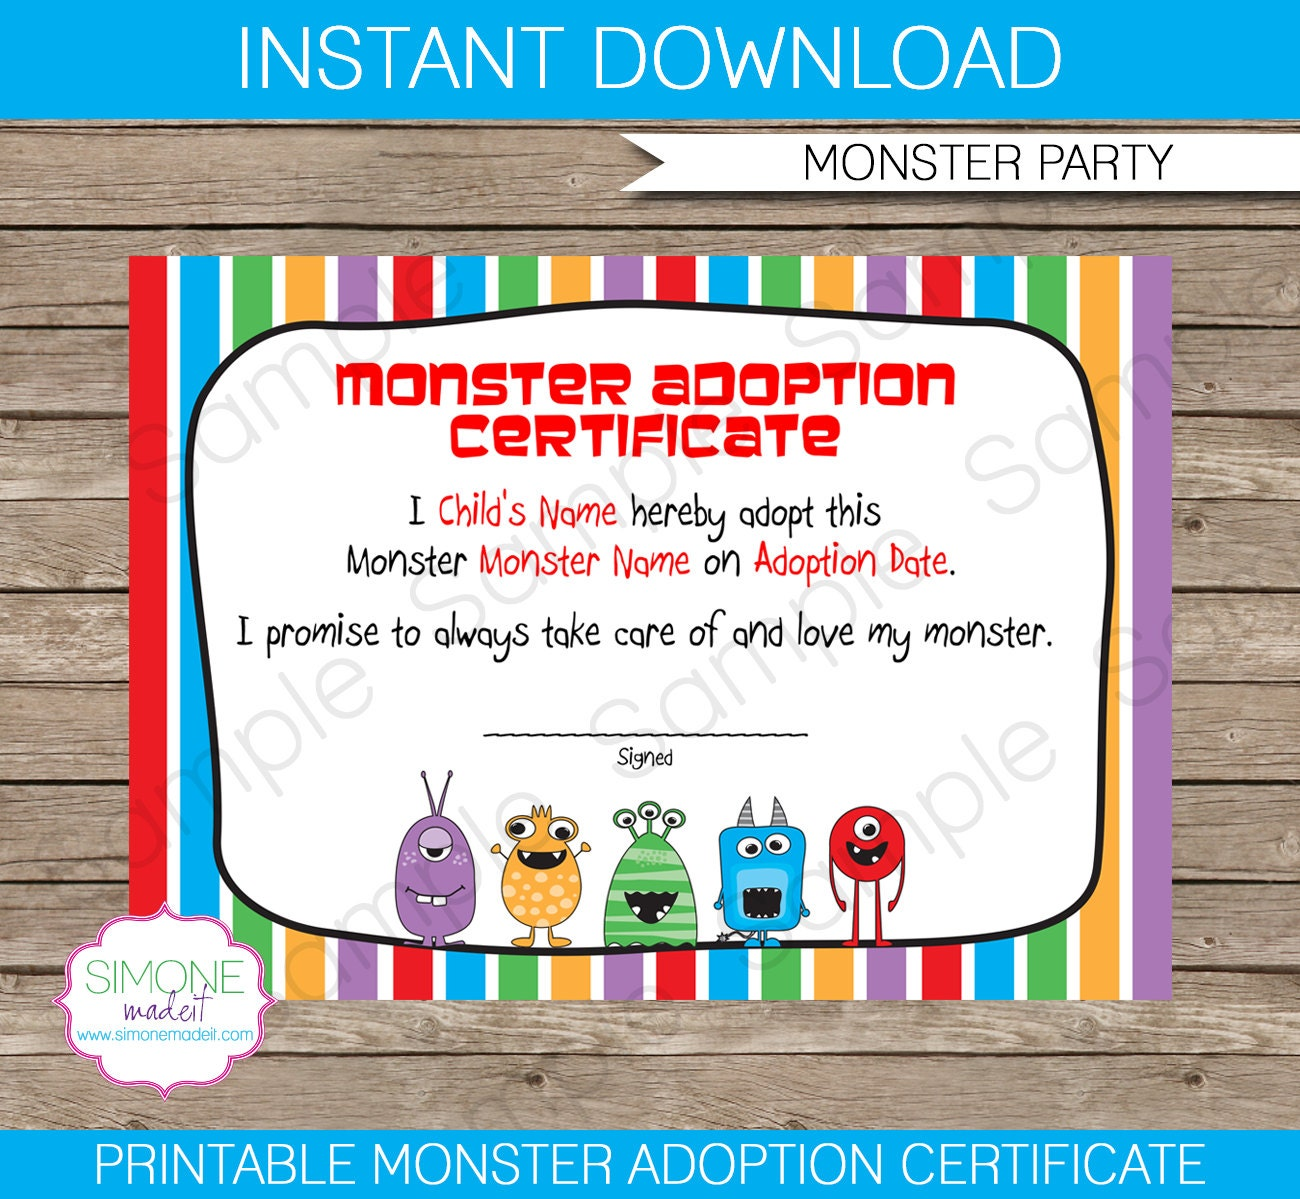 Monster adoption certificate instant download printable zoom xflitez Image collections